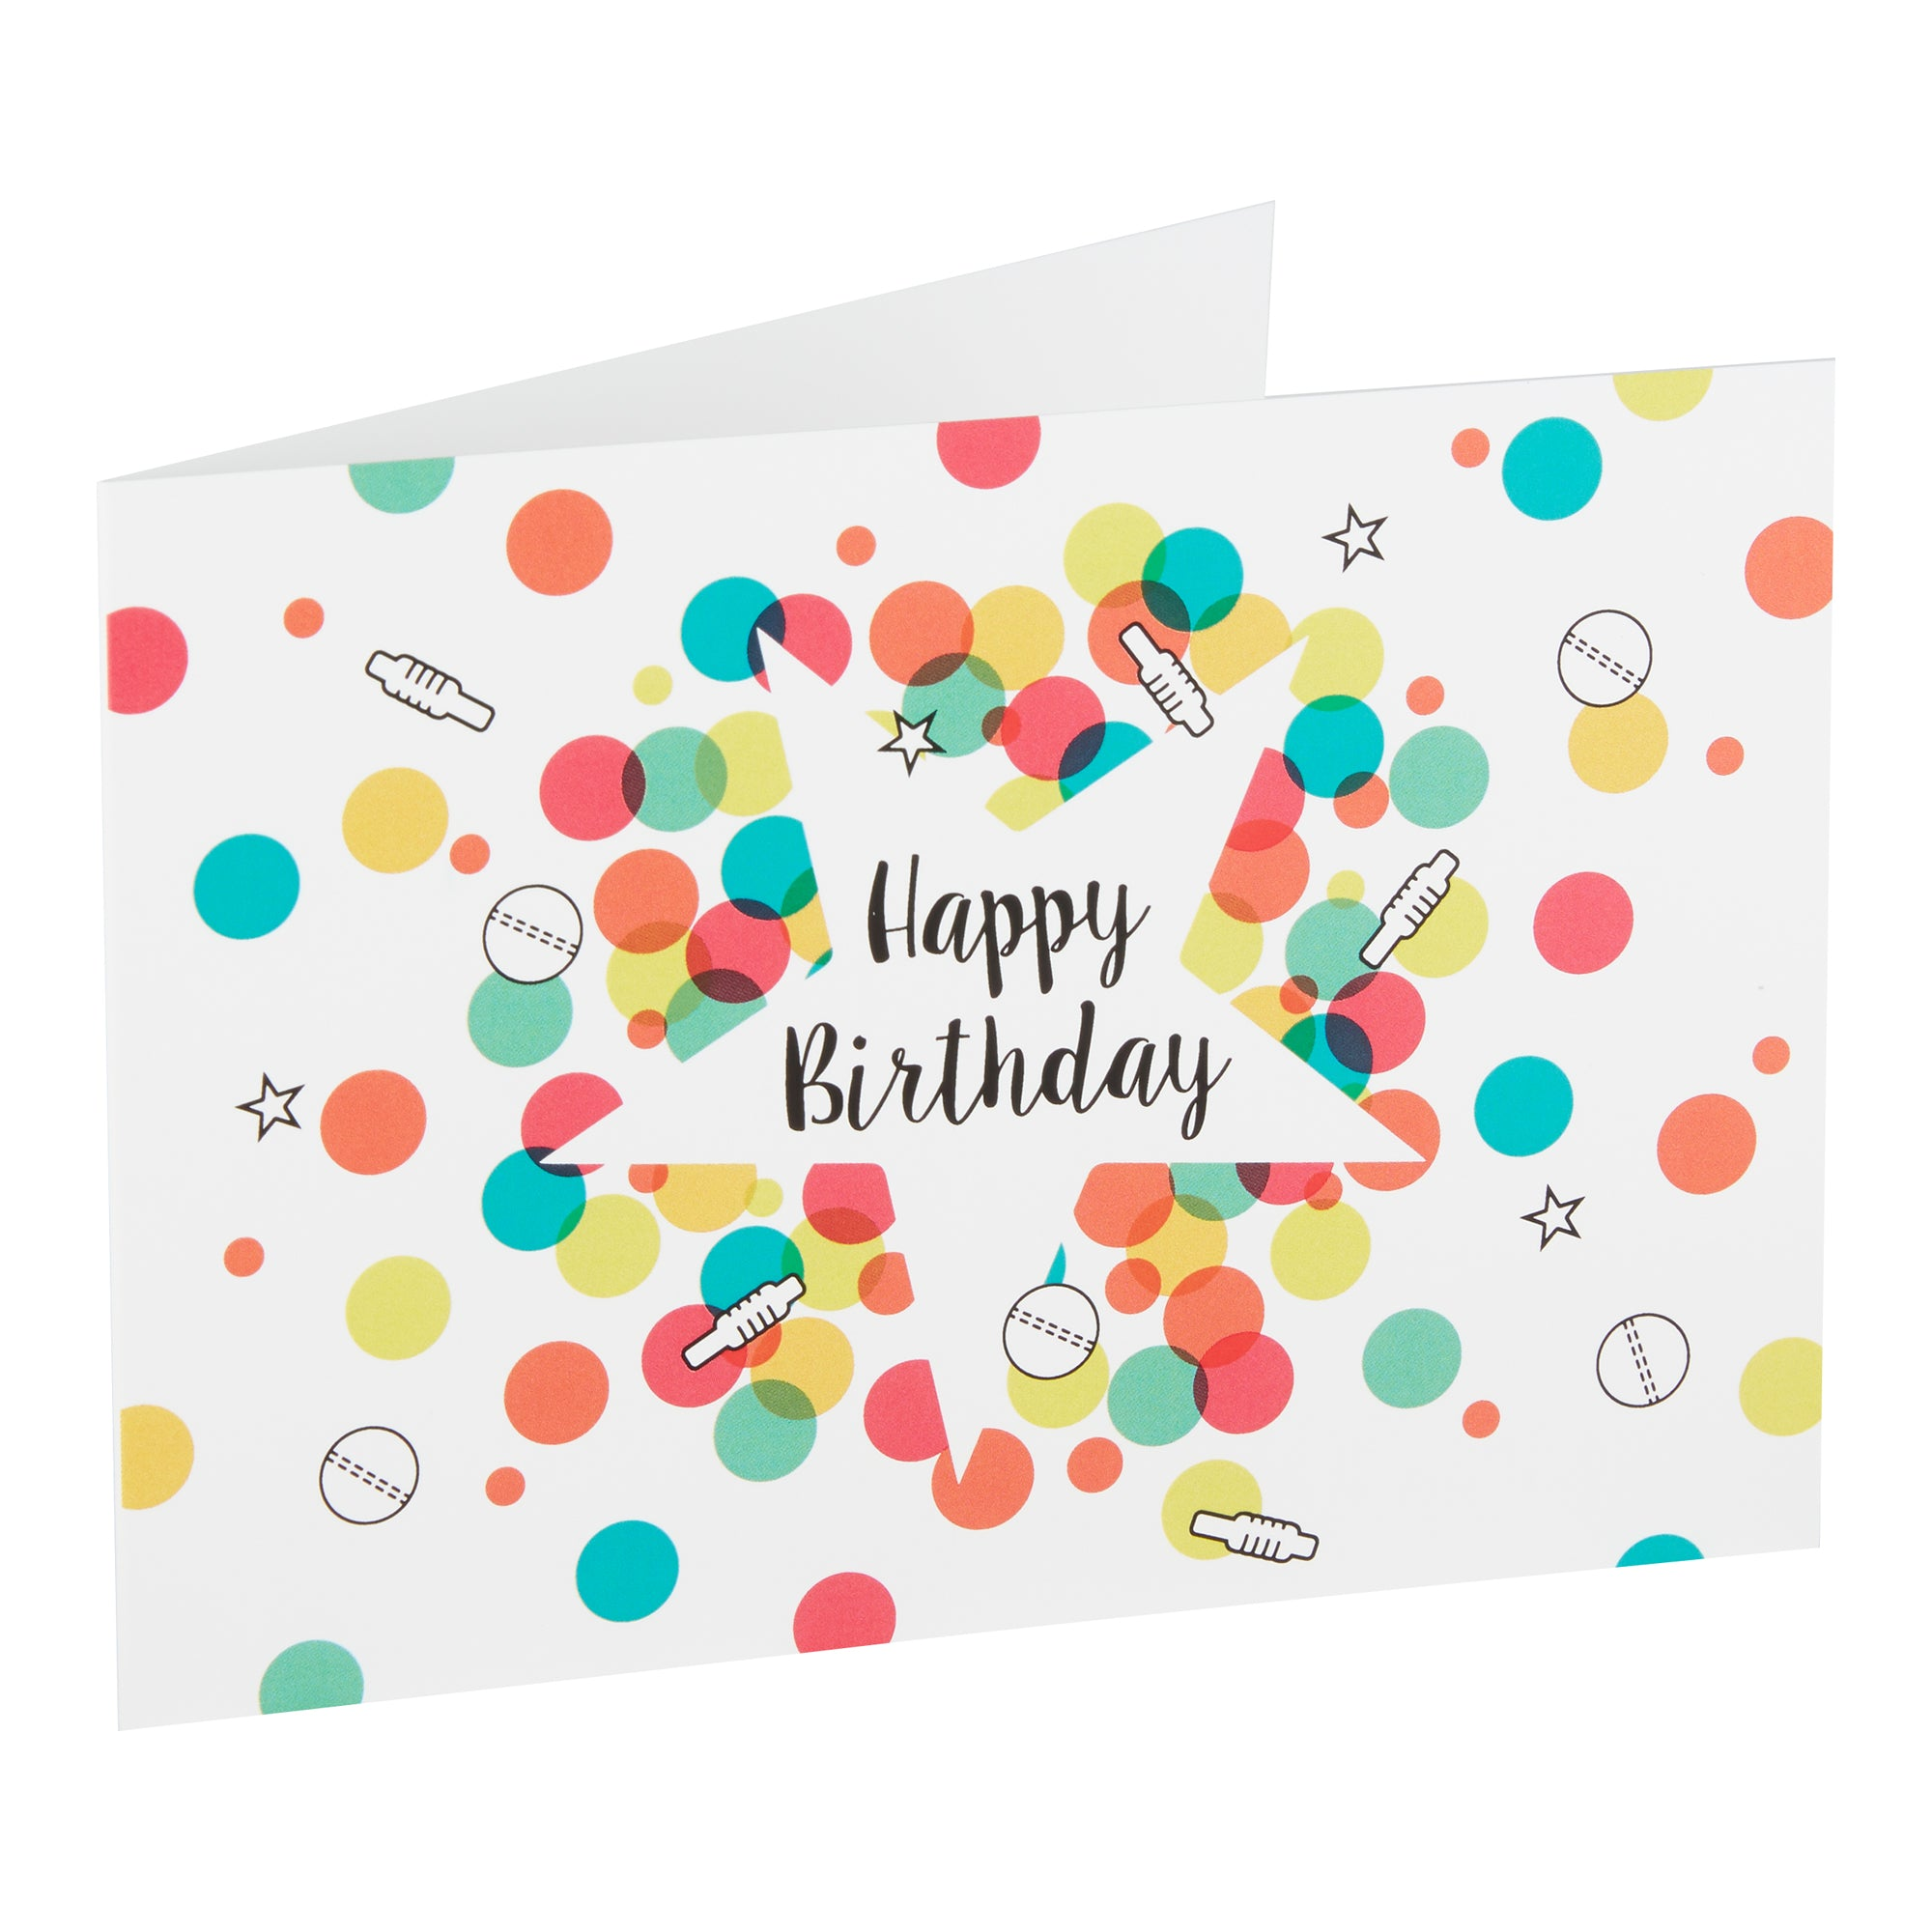 HAPPY BIRTHDAY - GREETING CARD & ENVELOPE